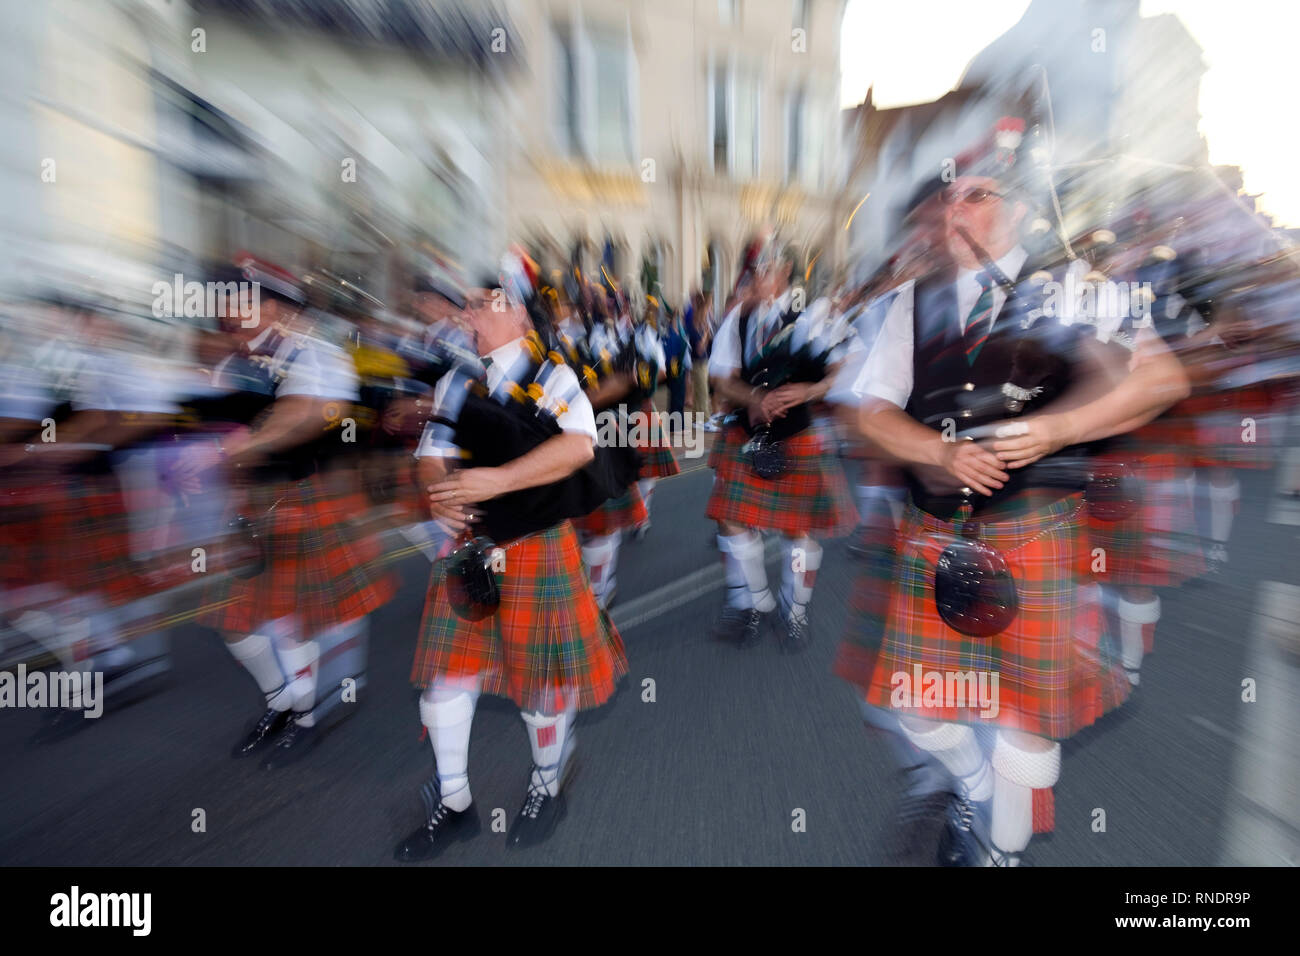 Pipe , Band, bagpipes, marching, tartan, kilts, zoom, blur, abstract, camera, technique, 2011, Ryde Carnival, Ryde, Isle of Wight, England - Stock Image